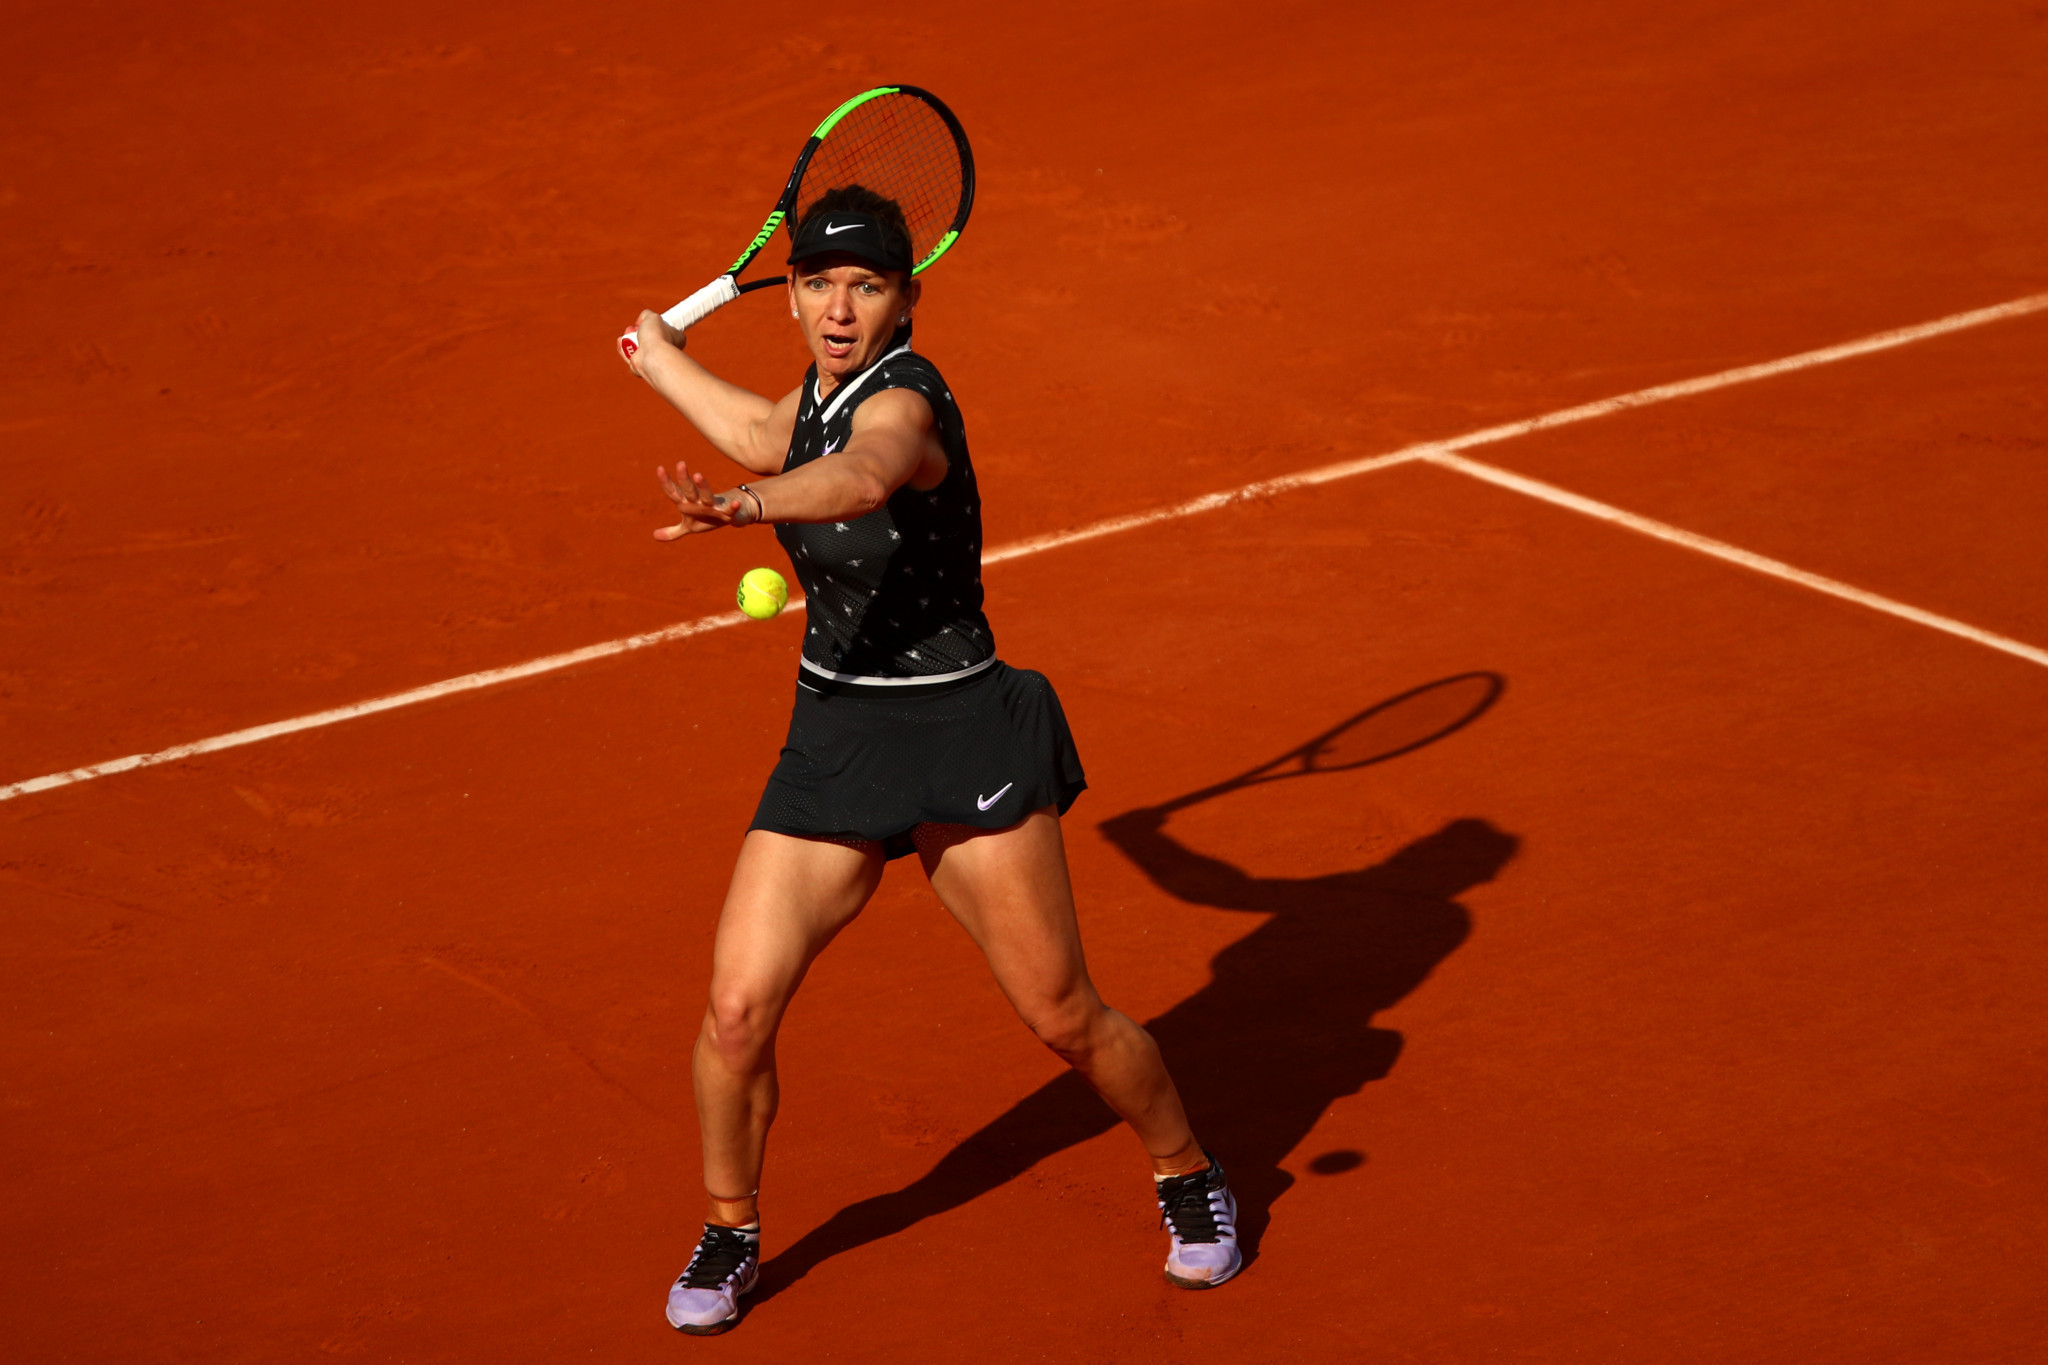 Romania's reigning champion Simona Halep comfortably defeated Polish youngster Iga Swiatek ©Getty Images